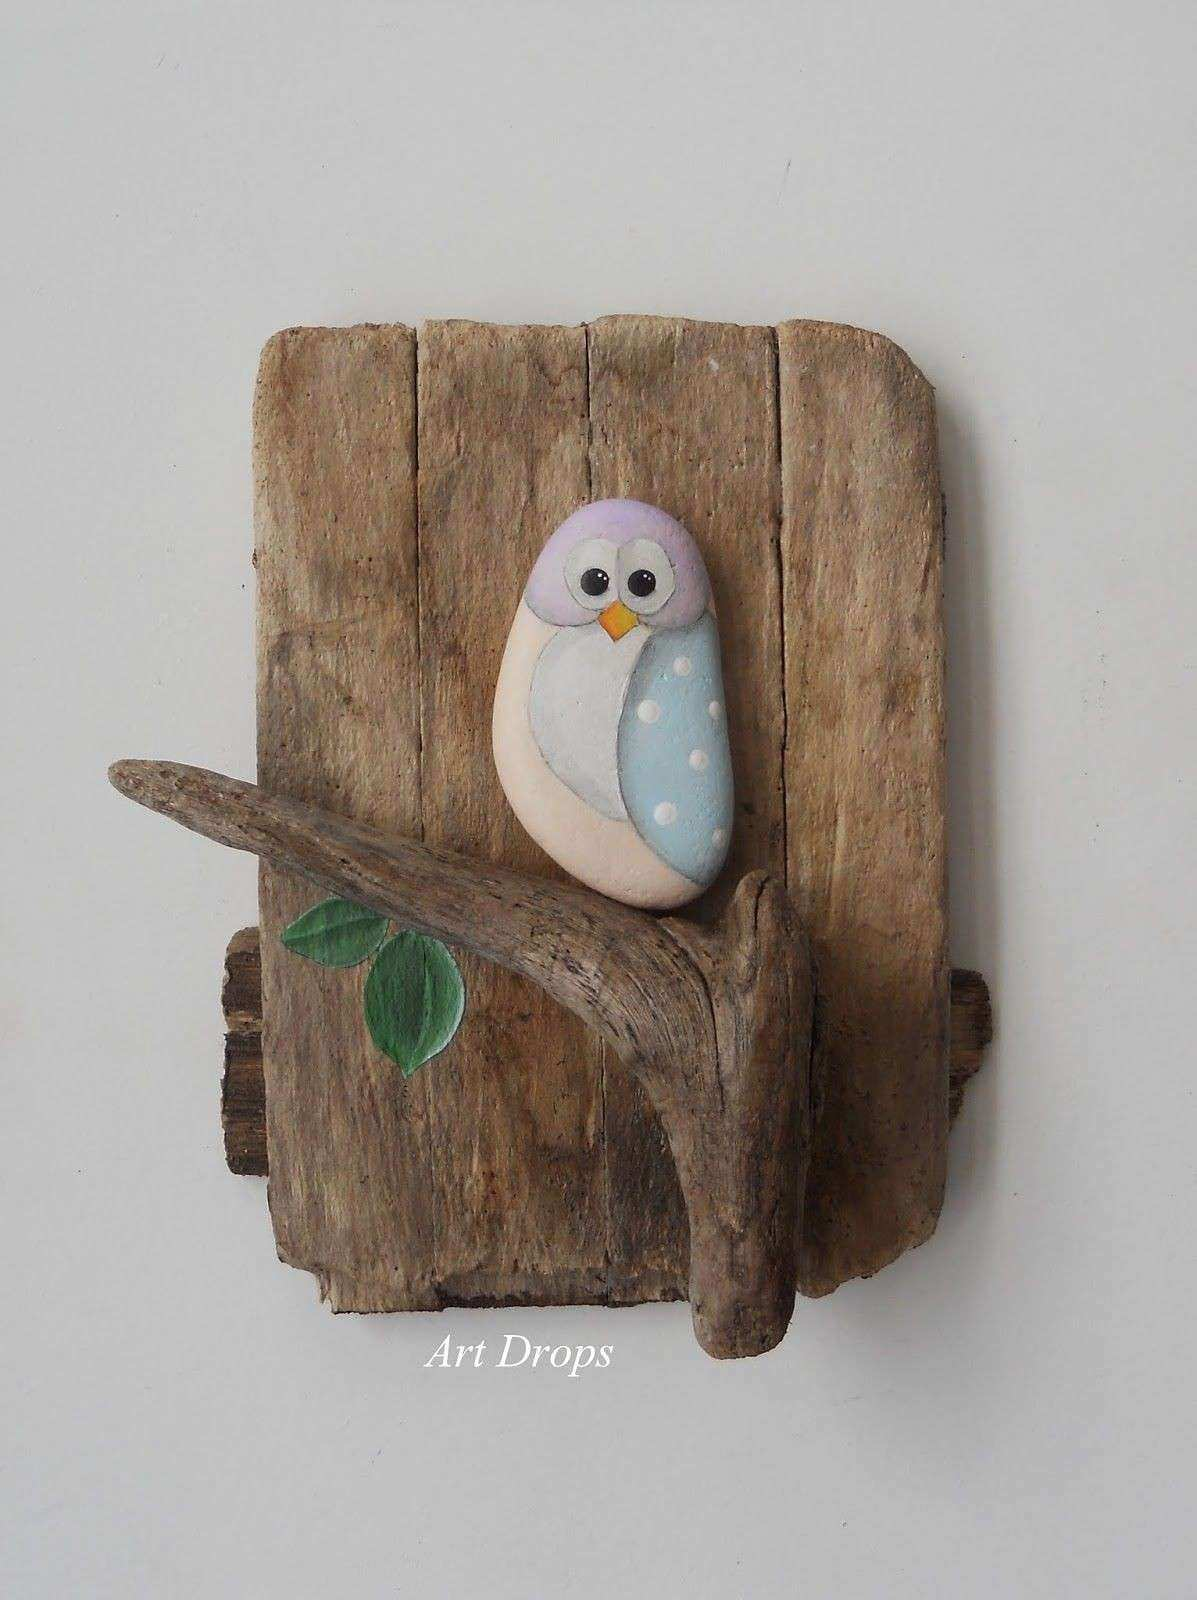 Art Drops Driftwood and a painted stone how easy is